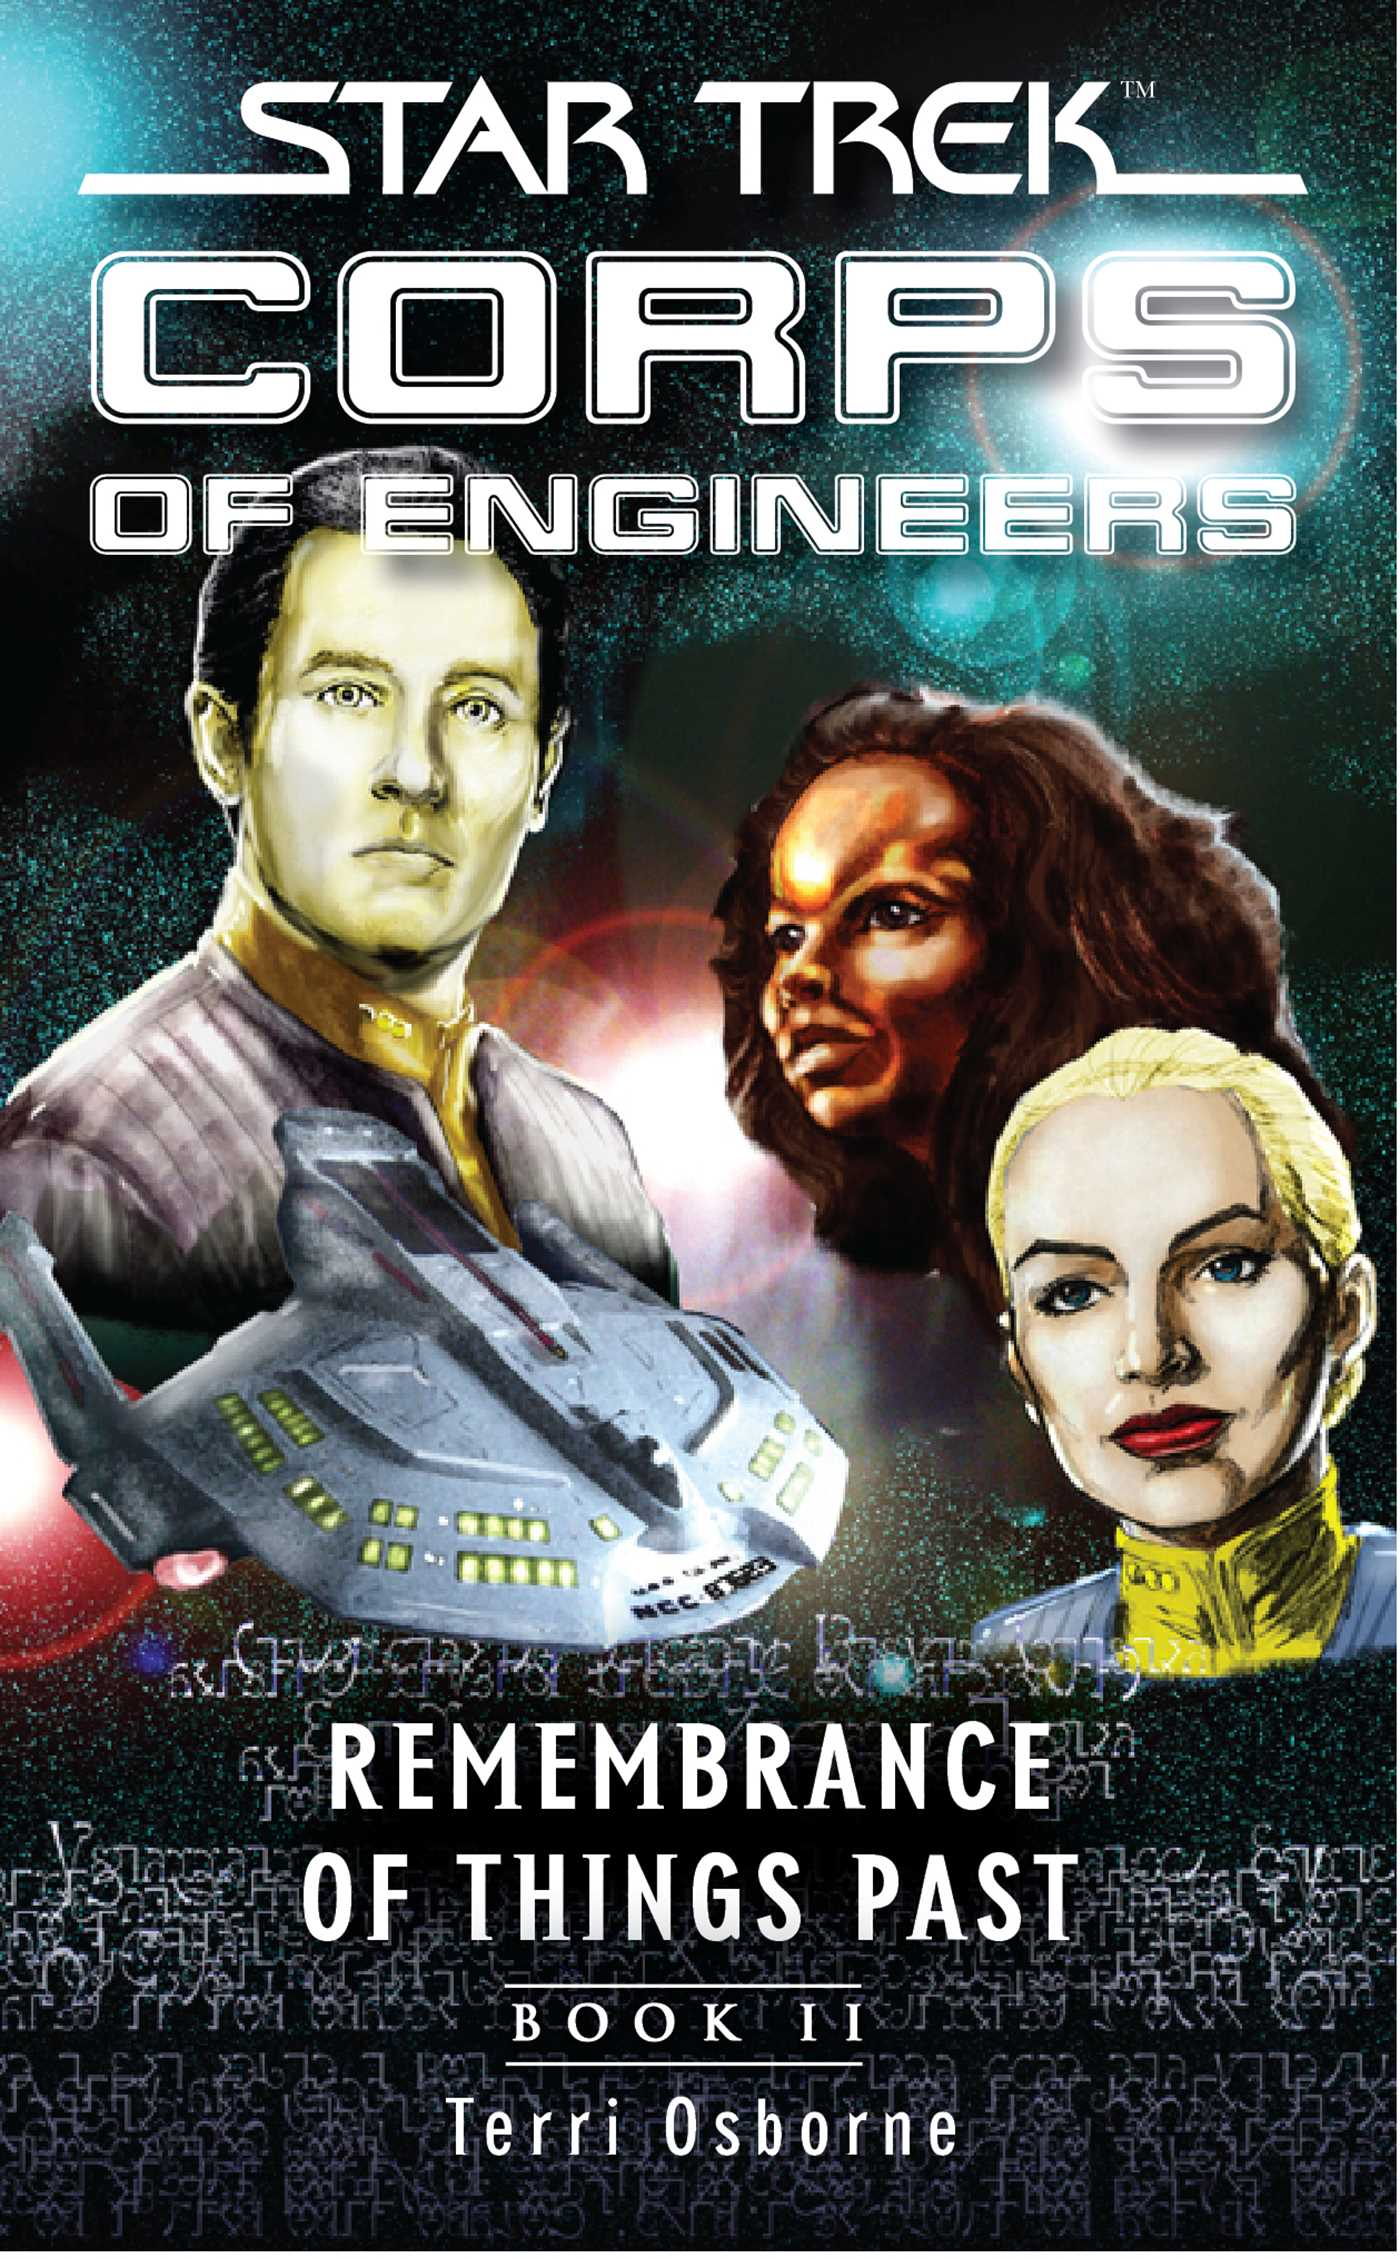 Star trek remembrance of things past 9781416544098 hr